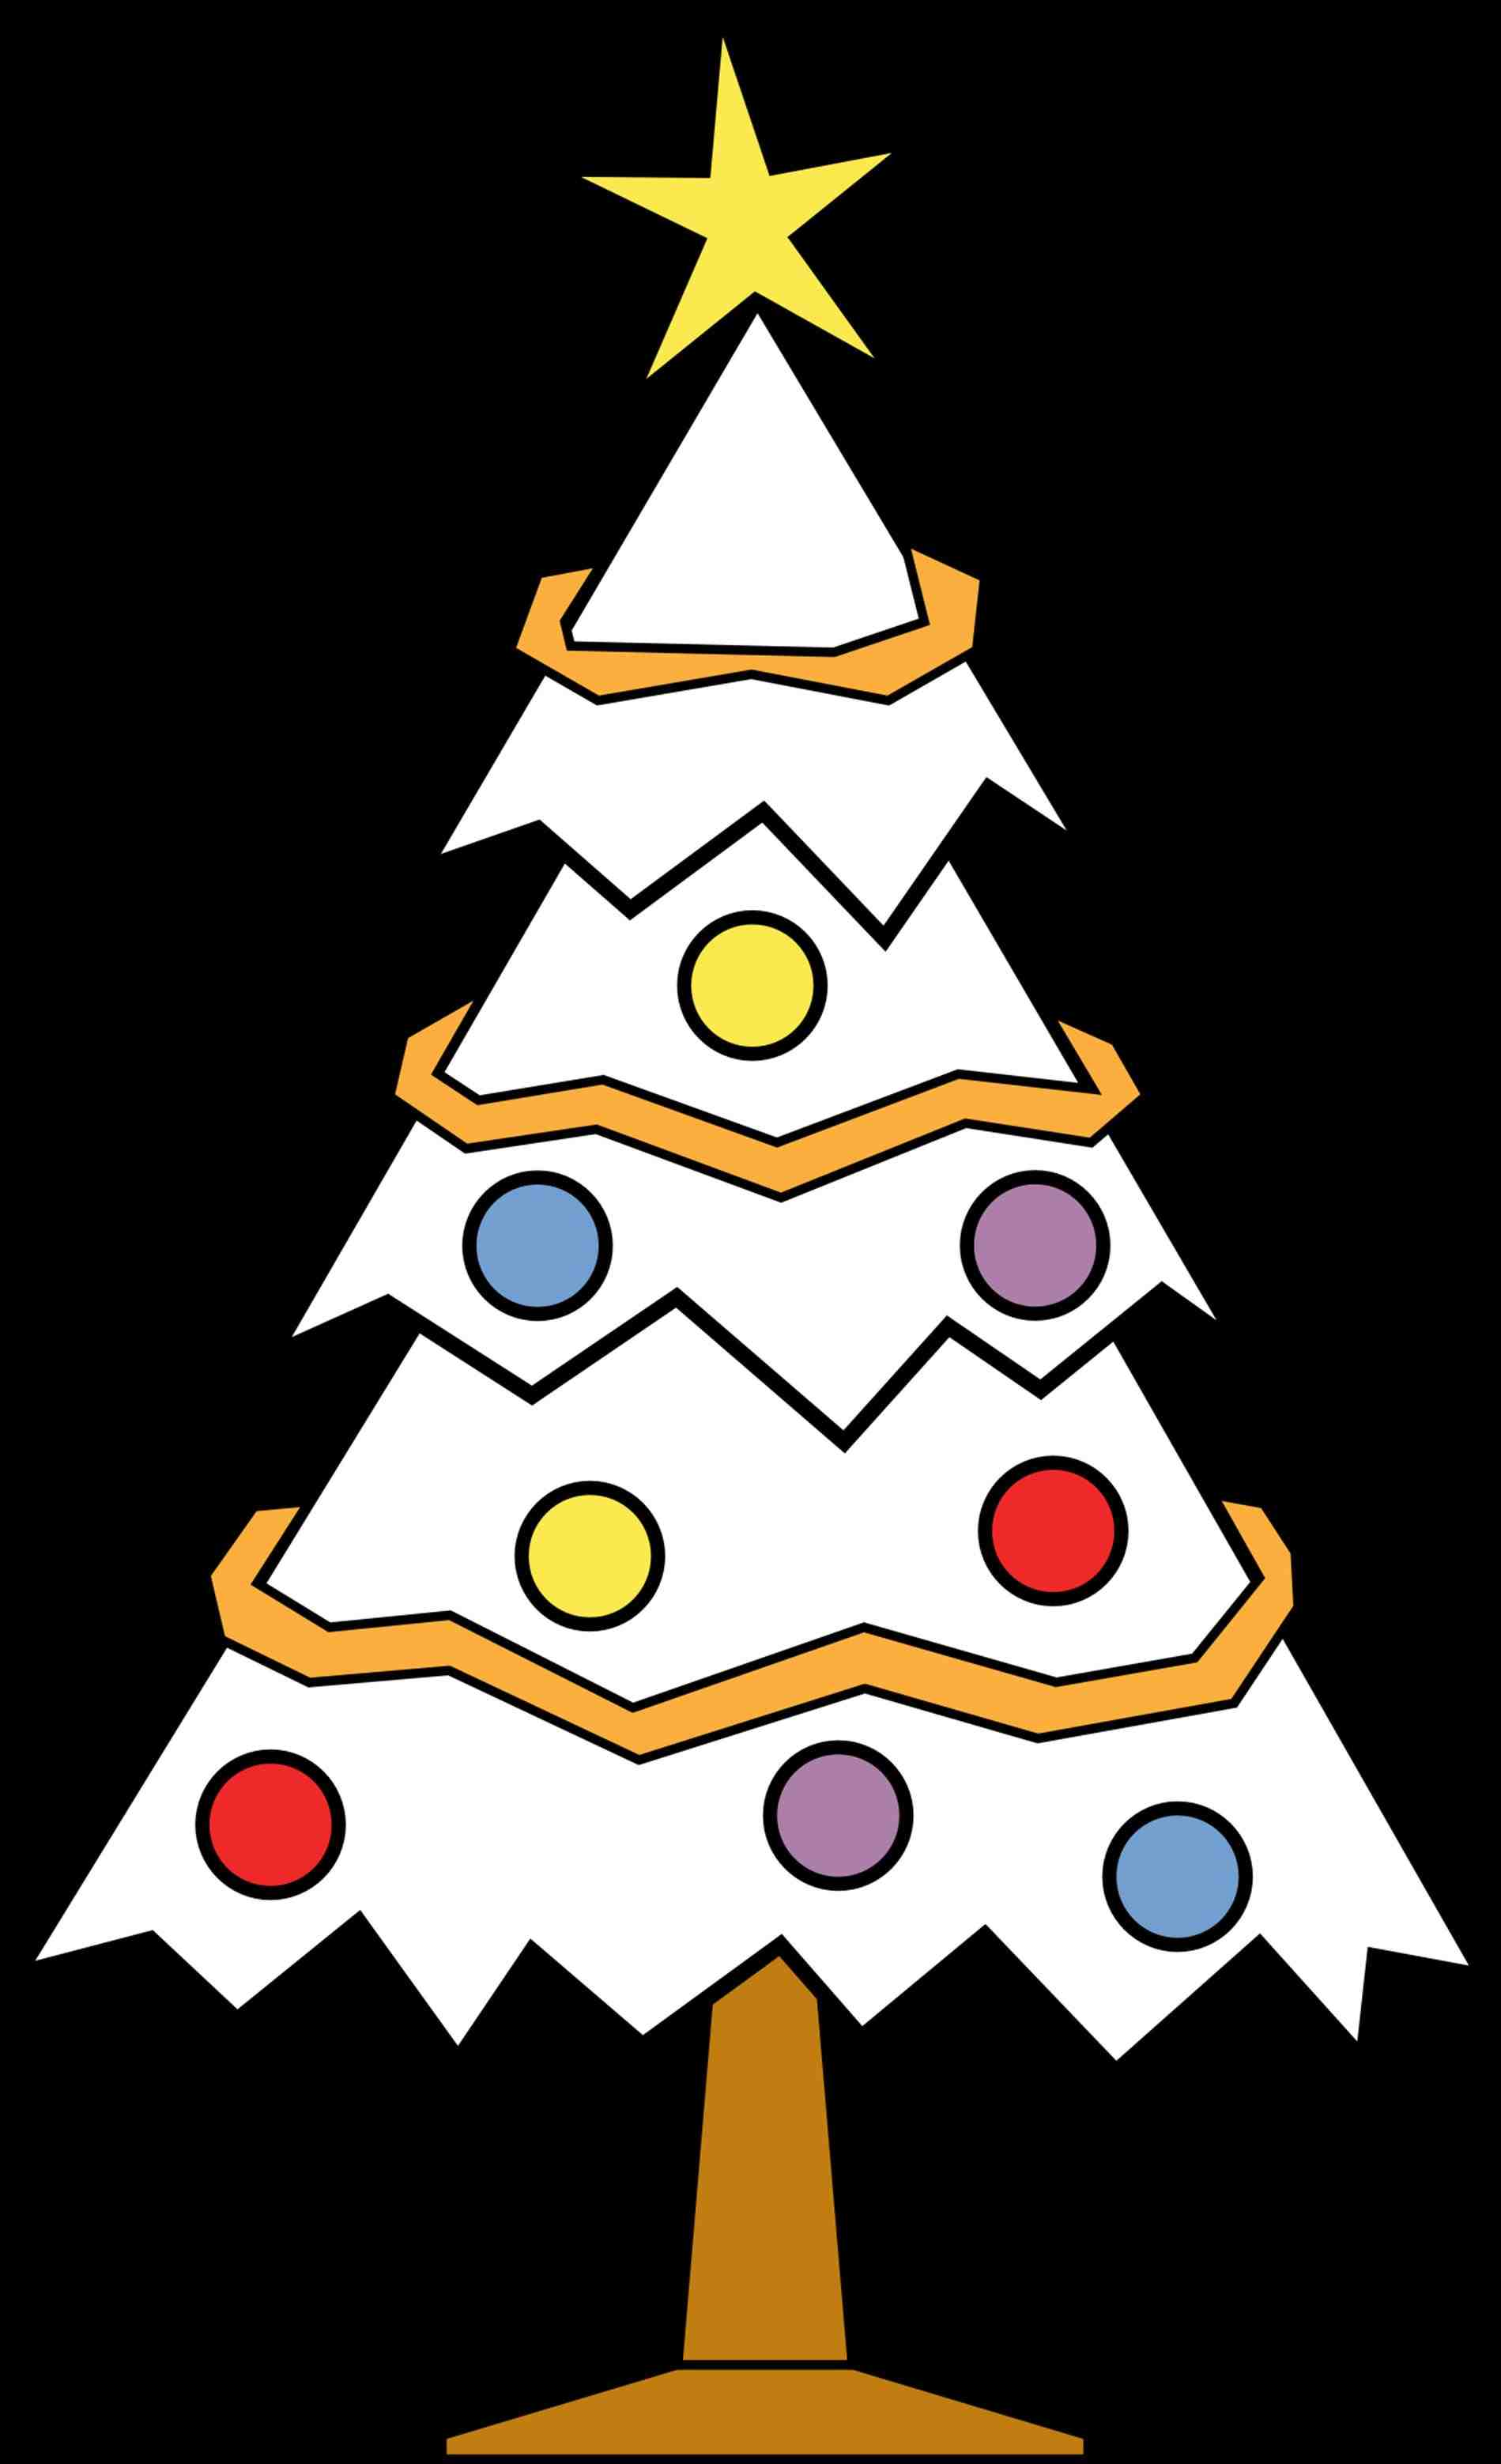 1899x3117 Christmas Ornament Clipart Free Black And White Cheminee.website